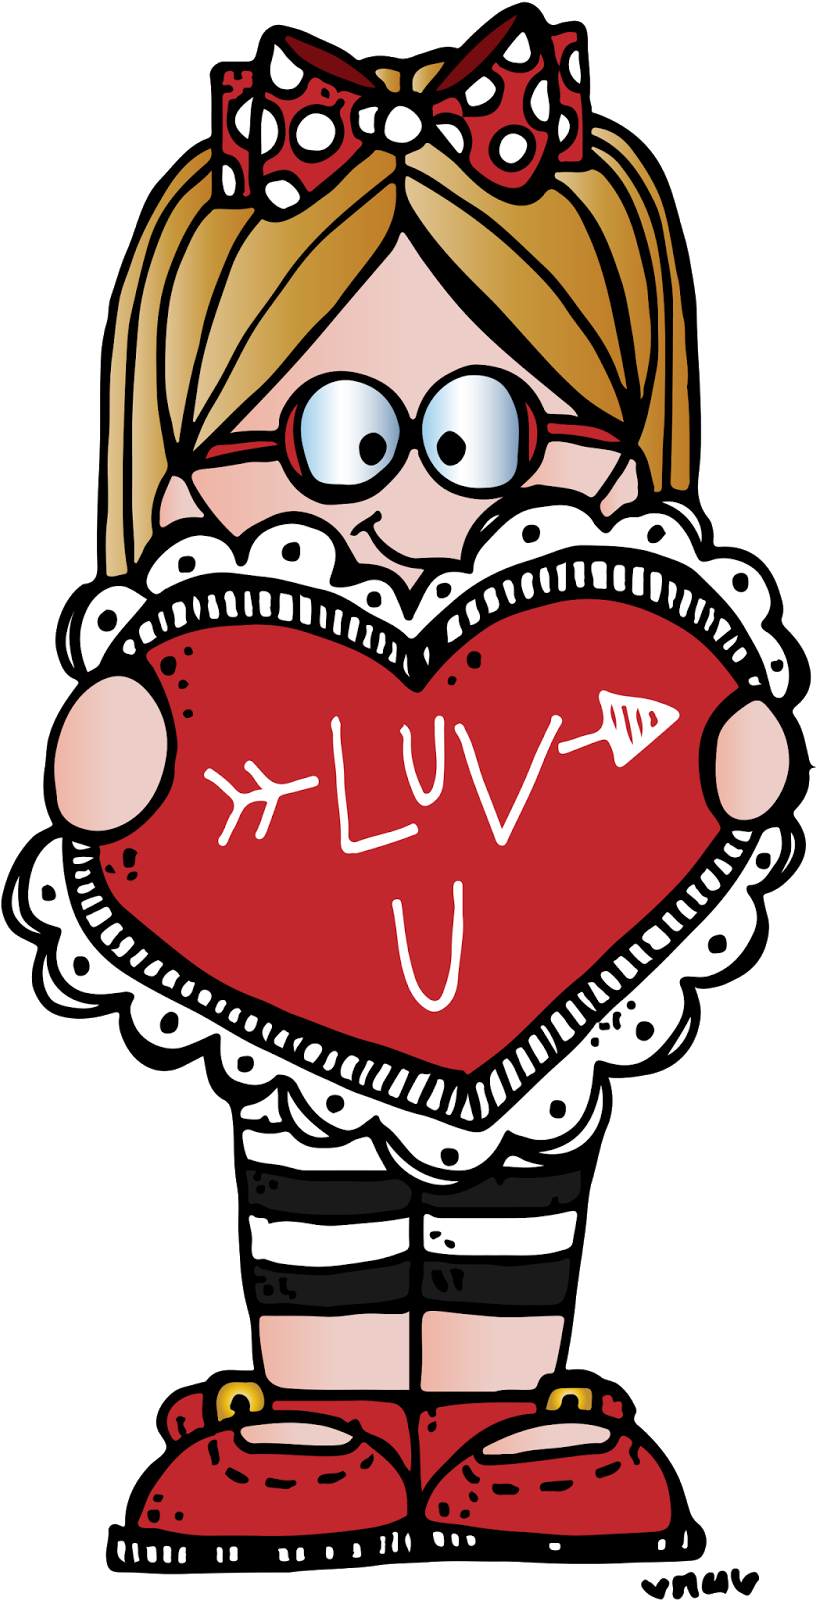 Happy last day of school clipart jpg black and white Happy Valentine's Day my friends! xox Nikki | MelonHeadz | Pinterest ... jpg black and white